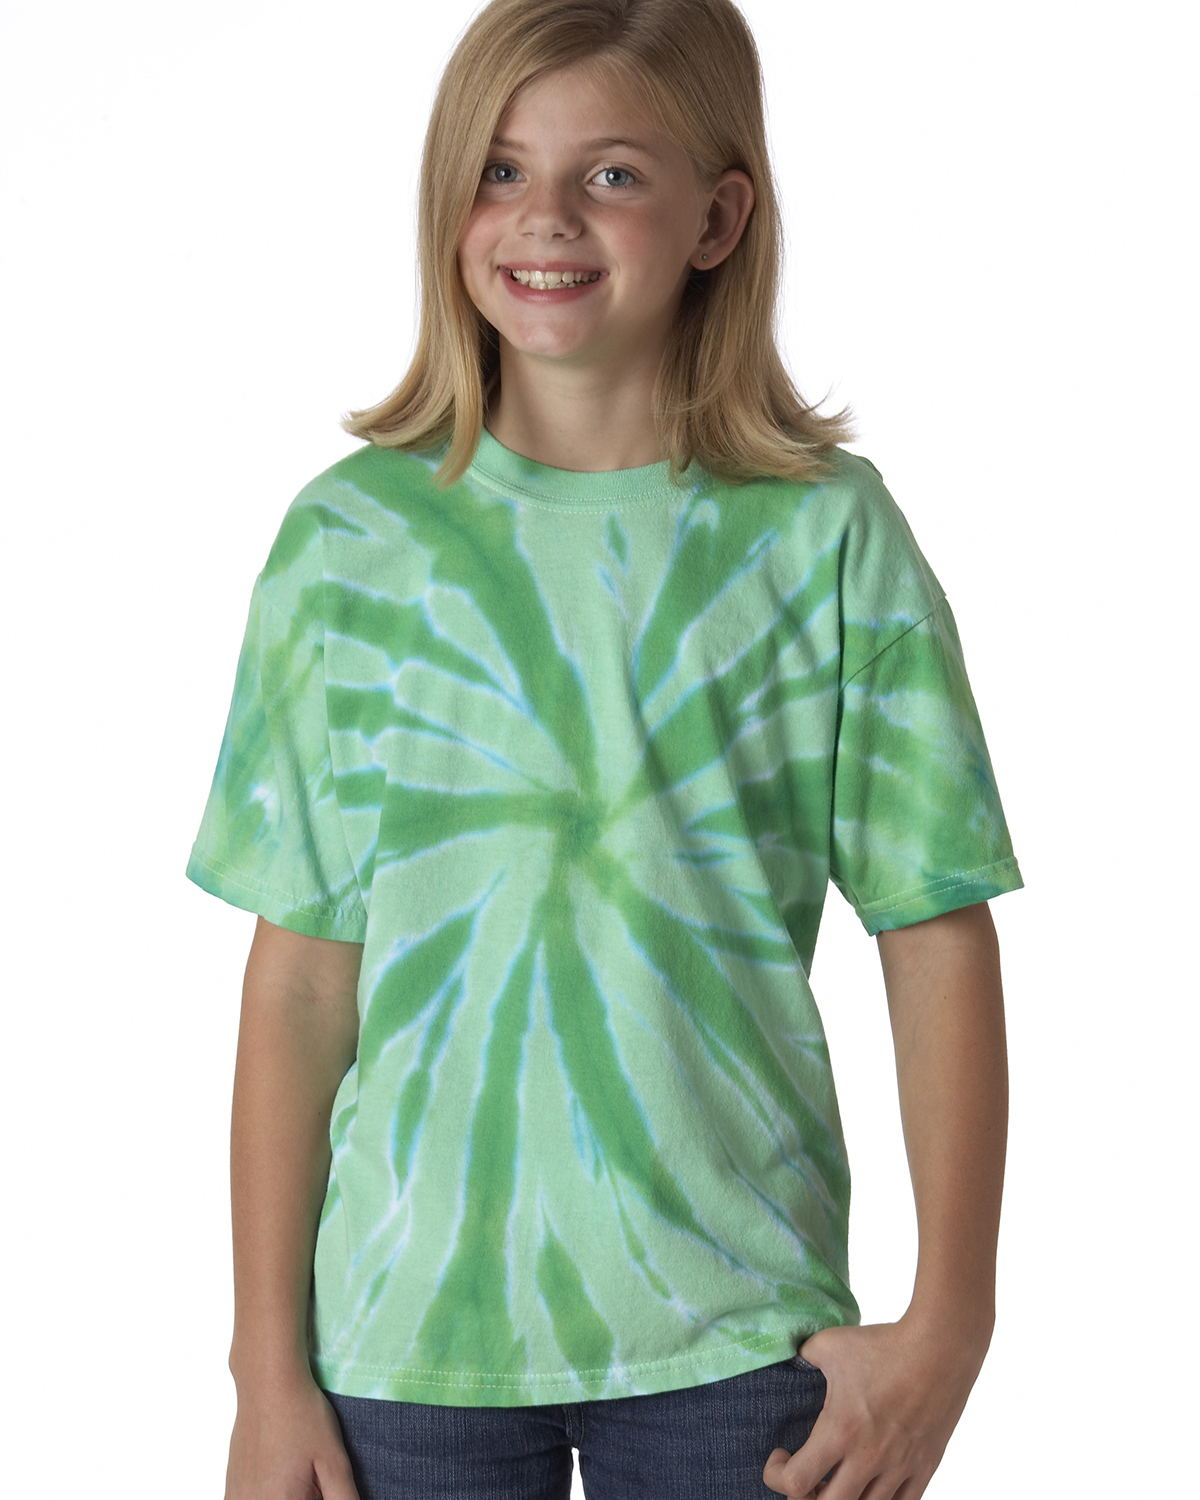 Tie-Dyed 20BTT - Youth Tone-on-Tone Pinwheel Short Sleeve ...